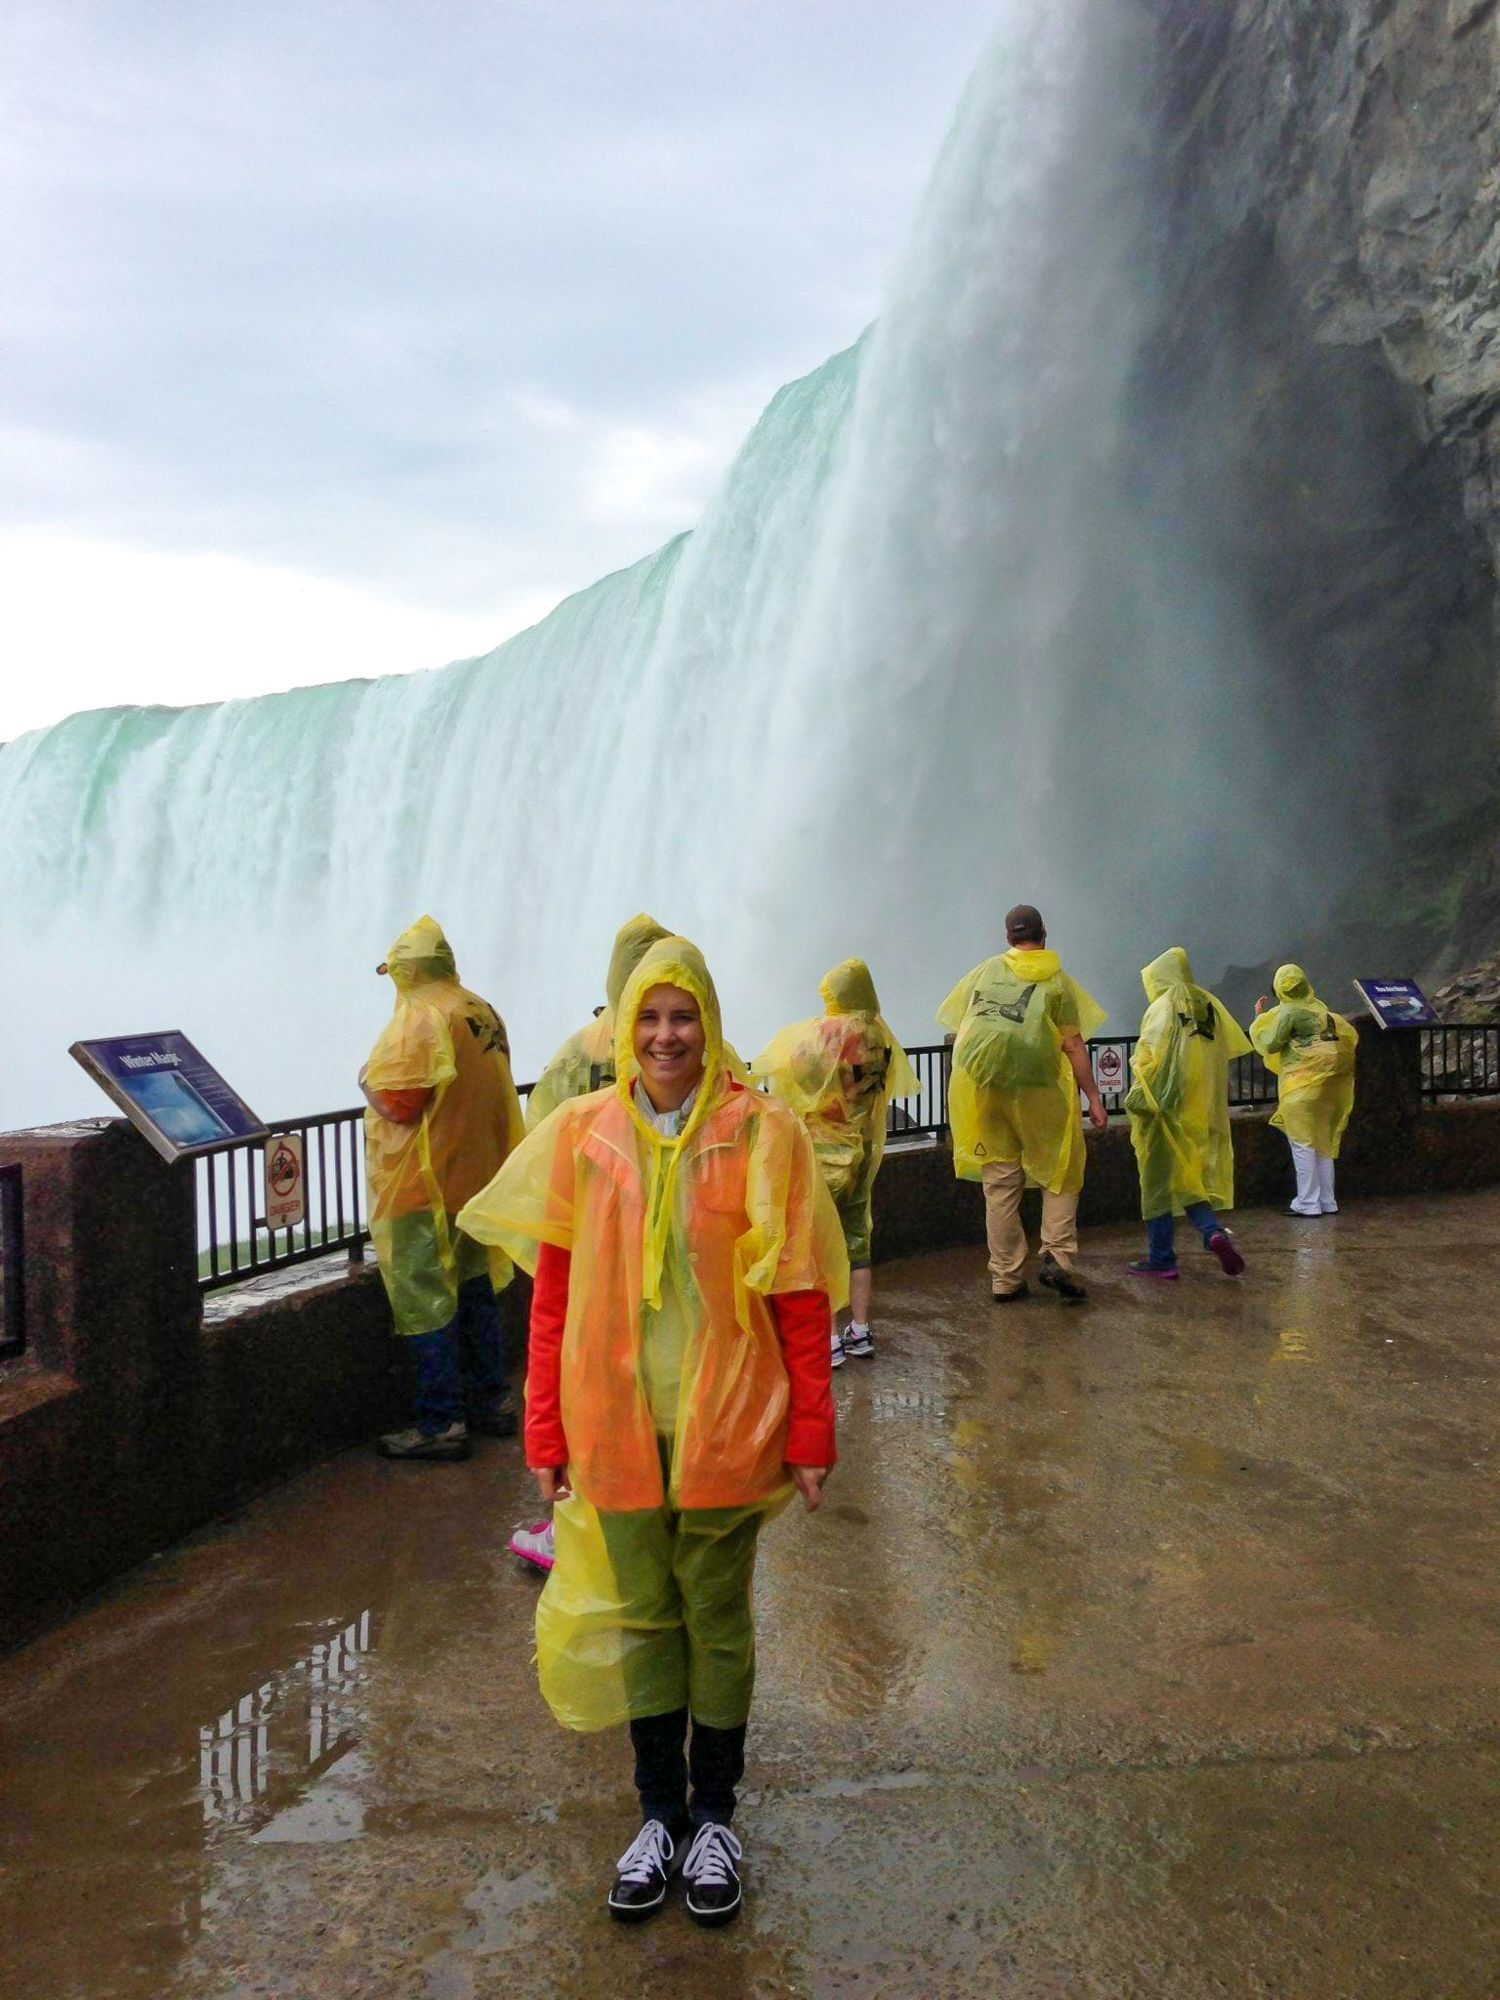 Me in my sleek yellow poncho at Journey Behind the Falls